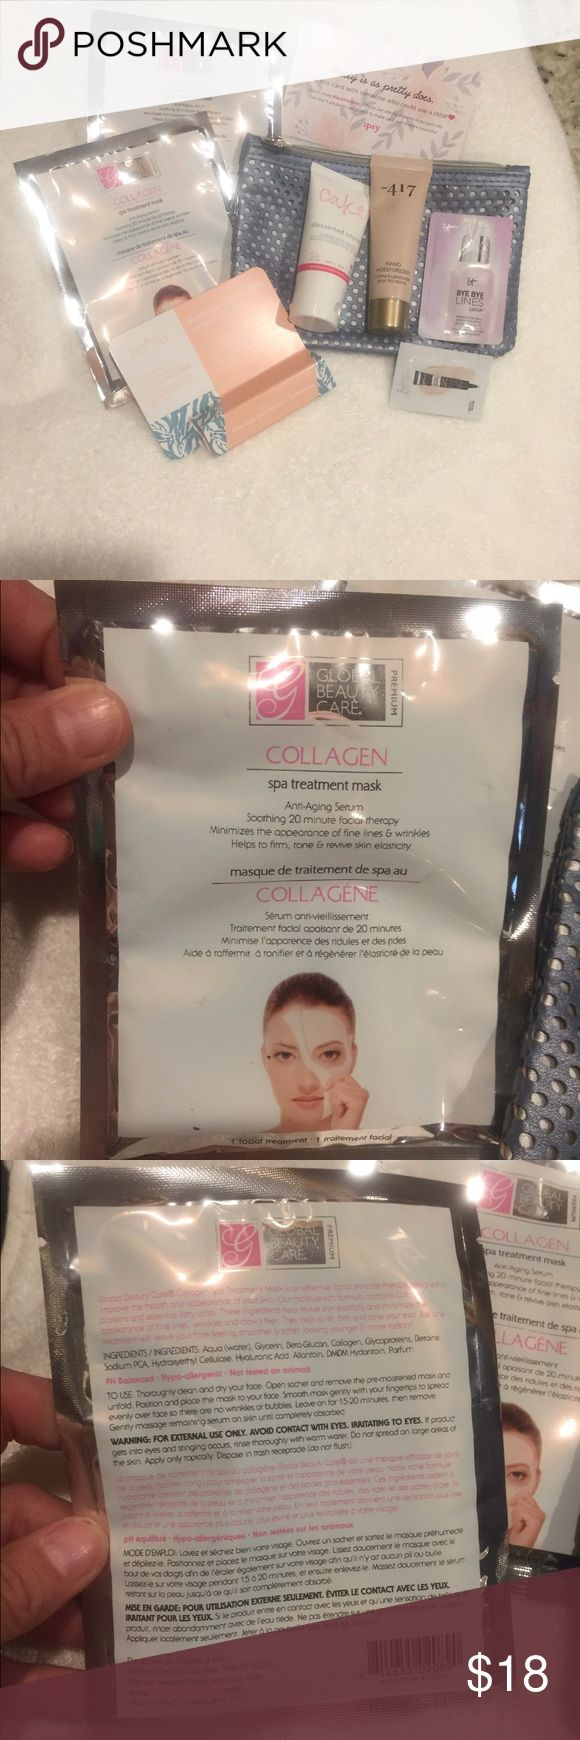 NWT IPSY Facial Make-up Bundle January 2017 Bag New IPSY bag and make-up bundle 2 Global Beauty Collagen Spa Treatment Mask, JeNu-Marine Collagen Mineral Gel .17 ounces. -Hand Moisturizer-417,  Cake Supreme Body MOUSSE; 2 IT cosmetics samples--Bye Bye under eye and Bye Bye Lines Serum. All items are new sealed. Comes with the January 2017 IPSY Bag Cake Makeup Face Primer